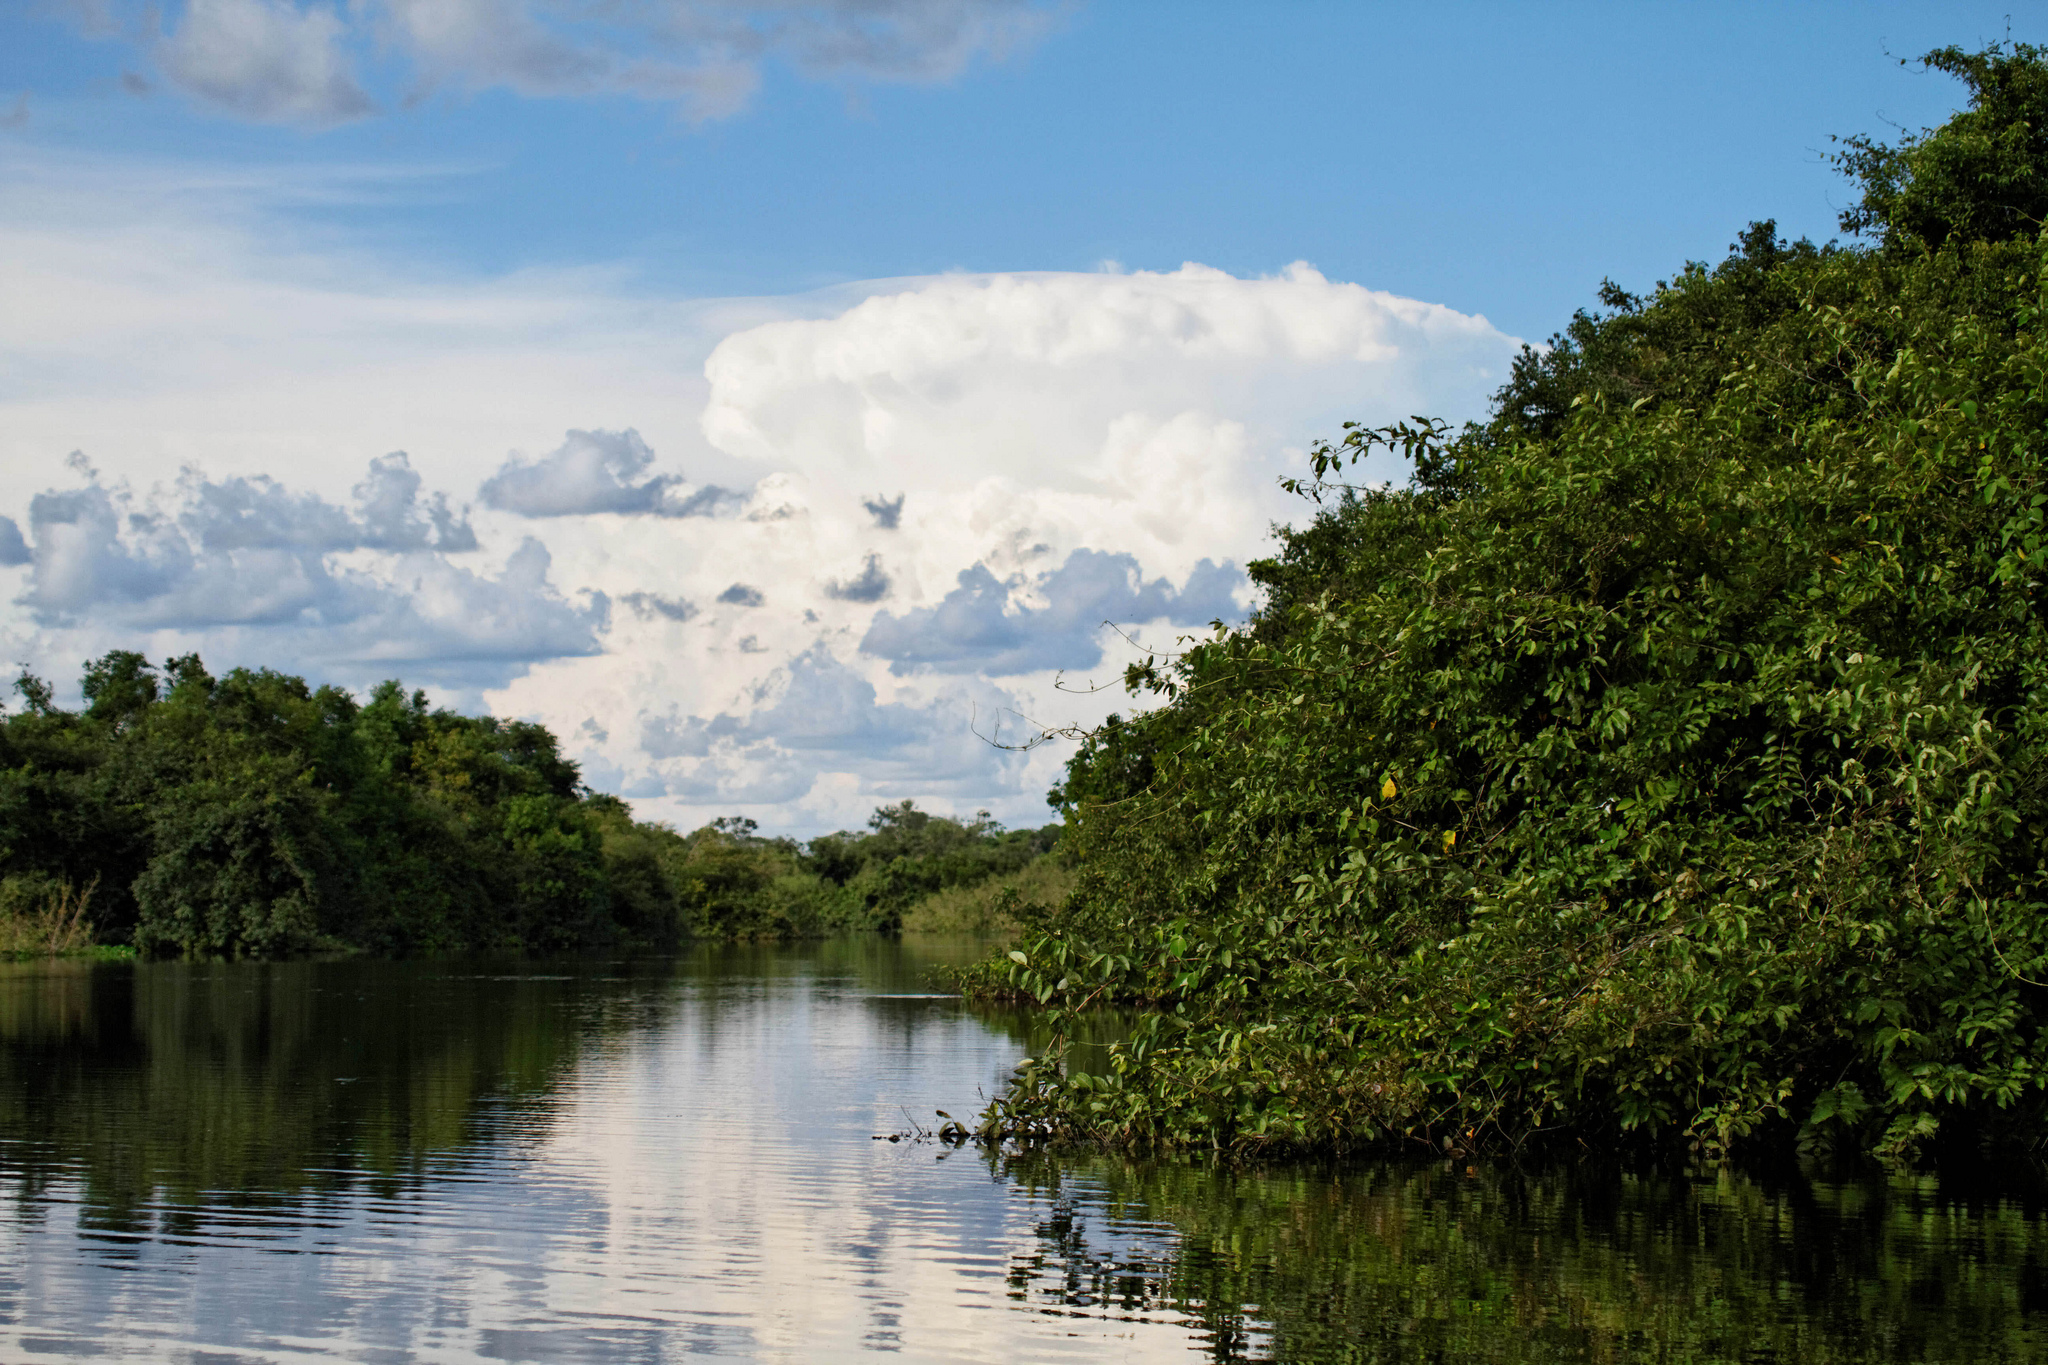 <p>Pantanal wetlands in Mato Grosso. Flickr/Ronald Woan</p>